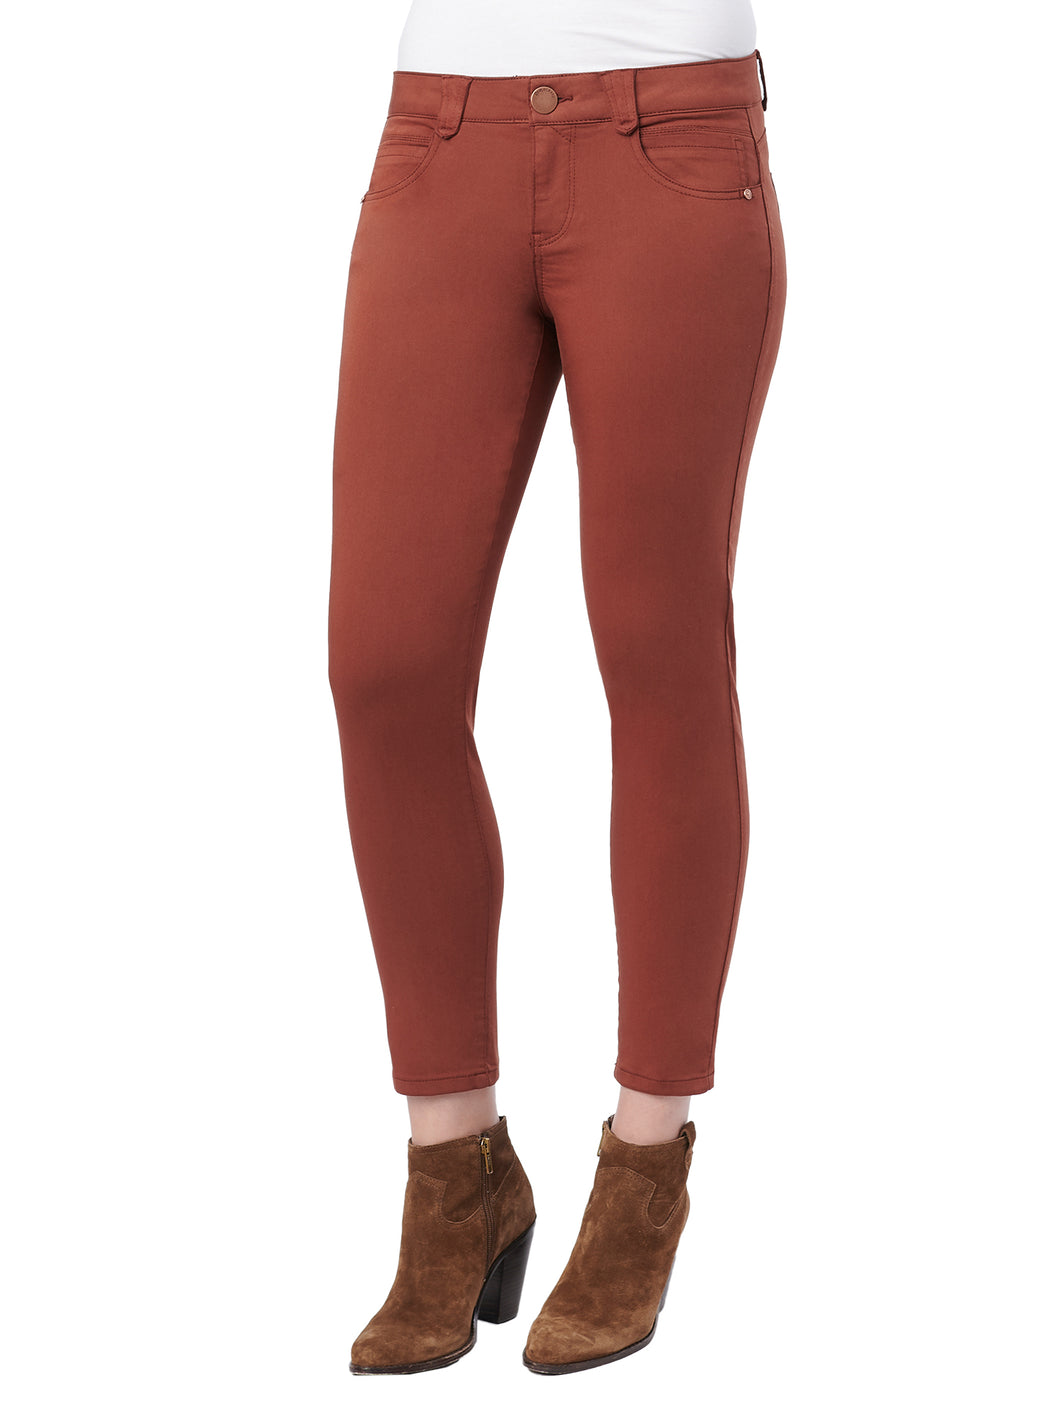 Democracy Cayenne Pepper Jeans